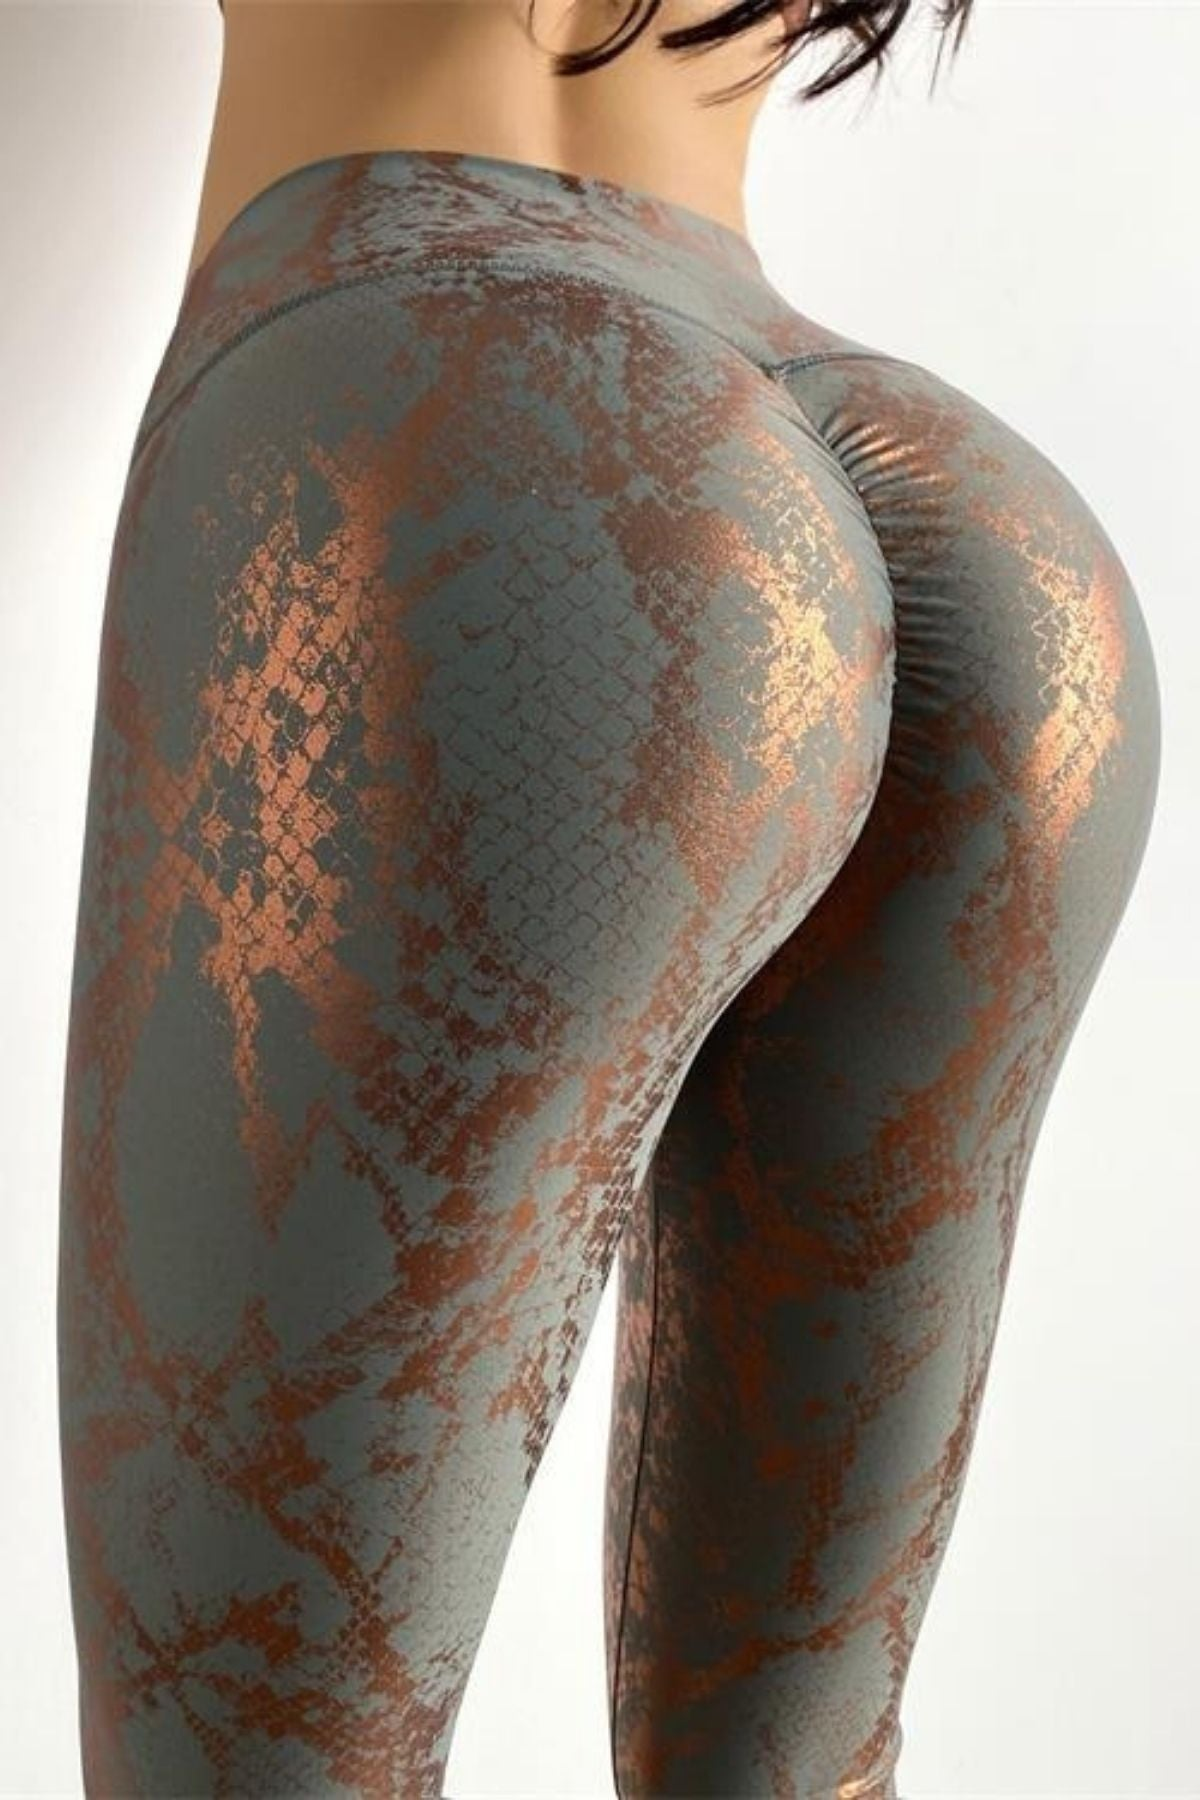 Women's Sexy Tight Grey Snakeskin Print Legging High Waisted Fit And Ruched Shiny Metallic Color